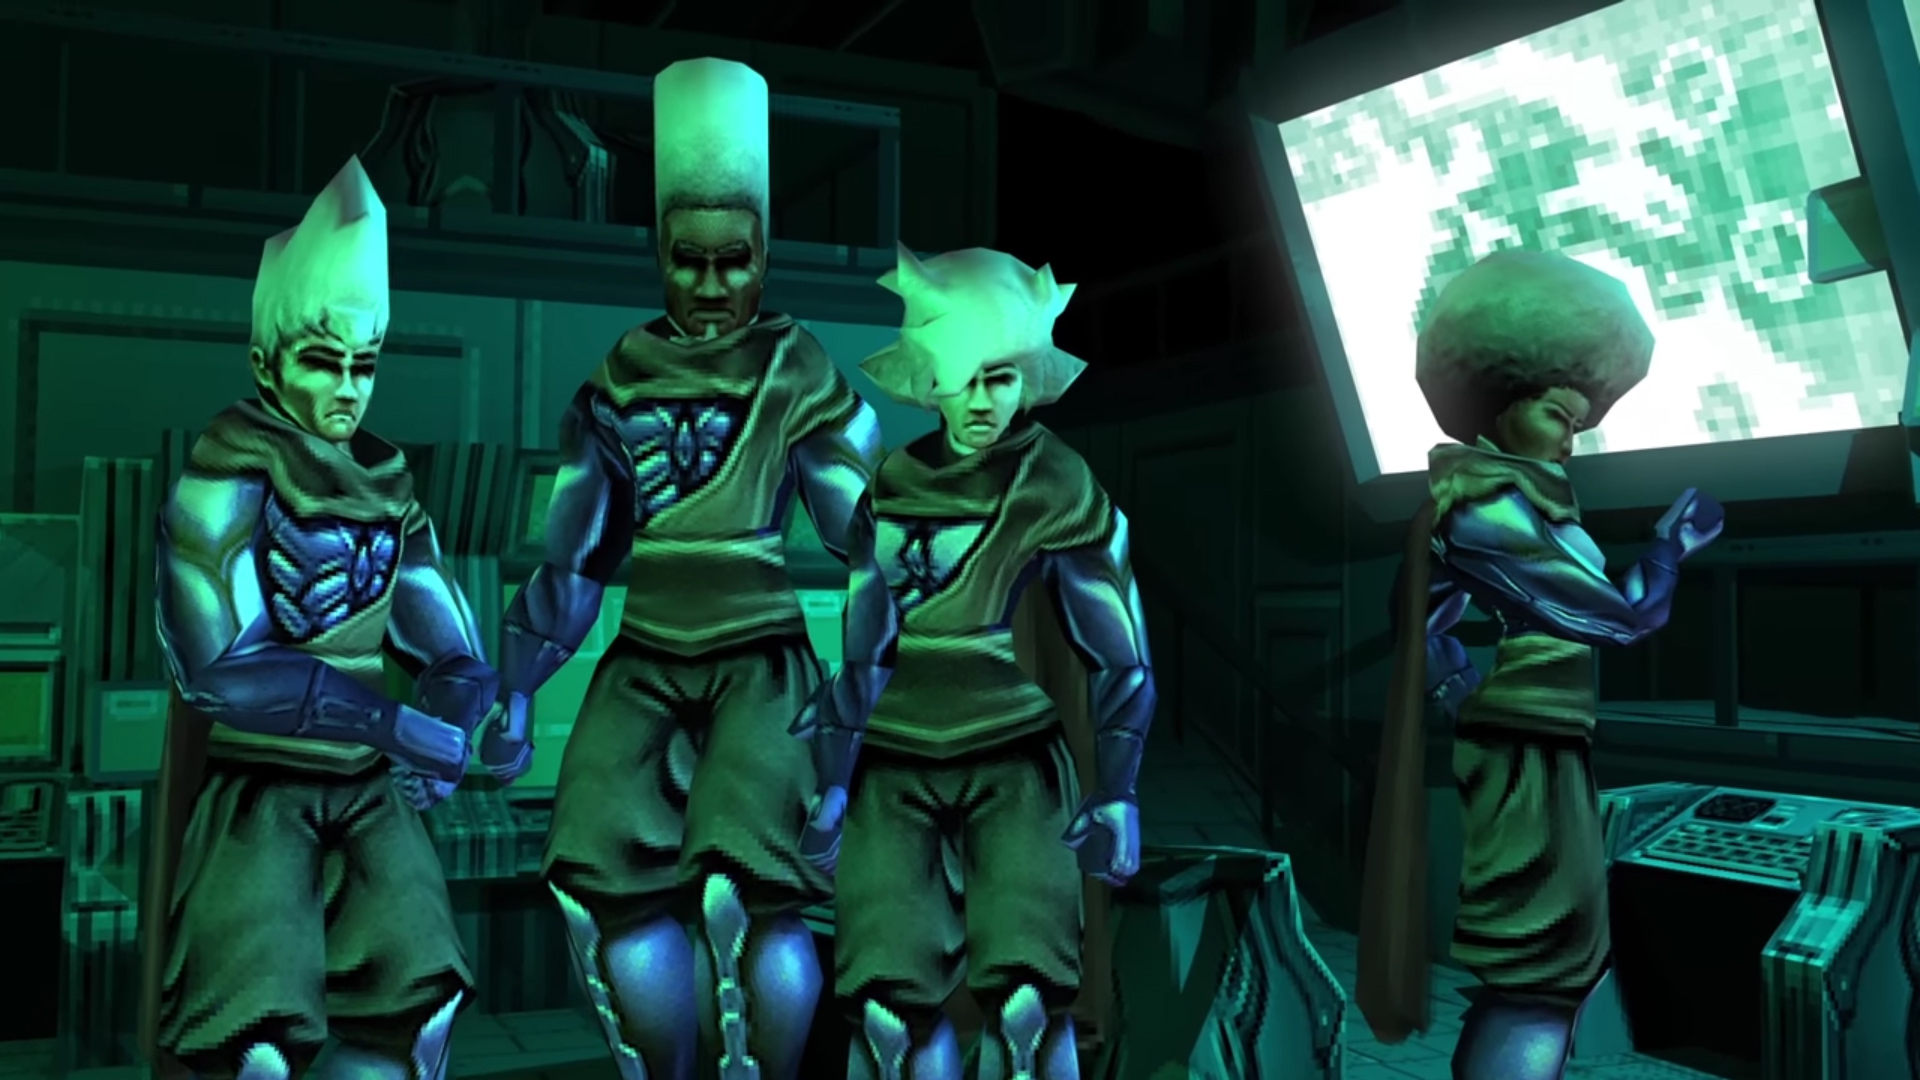 The creator of Dust: An Elysian Tail is making an MGS1-inspired stealth game screenshot